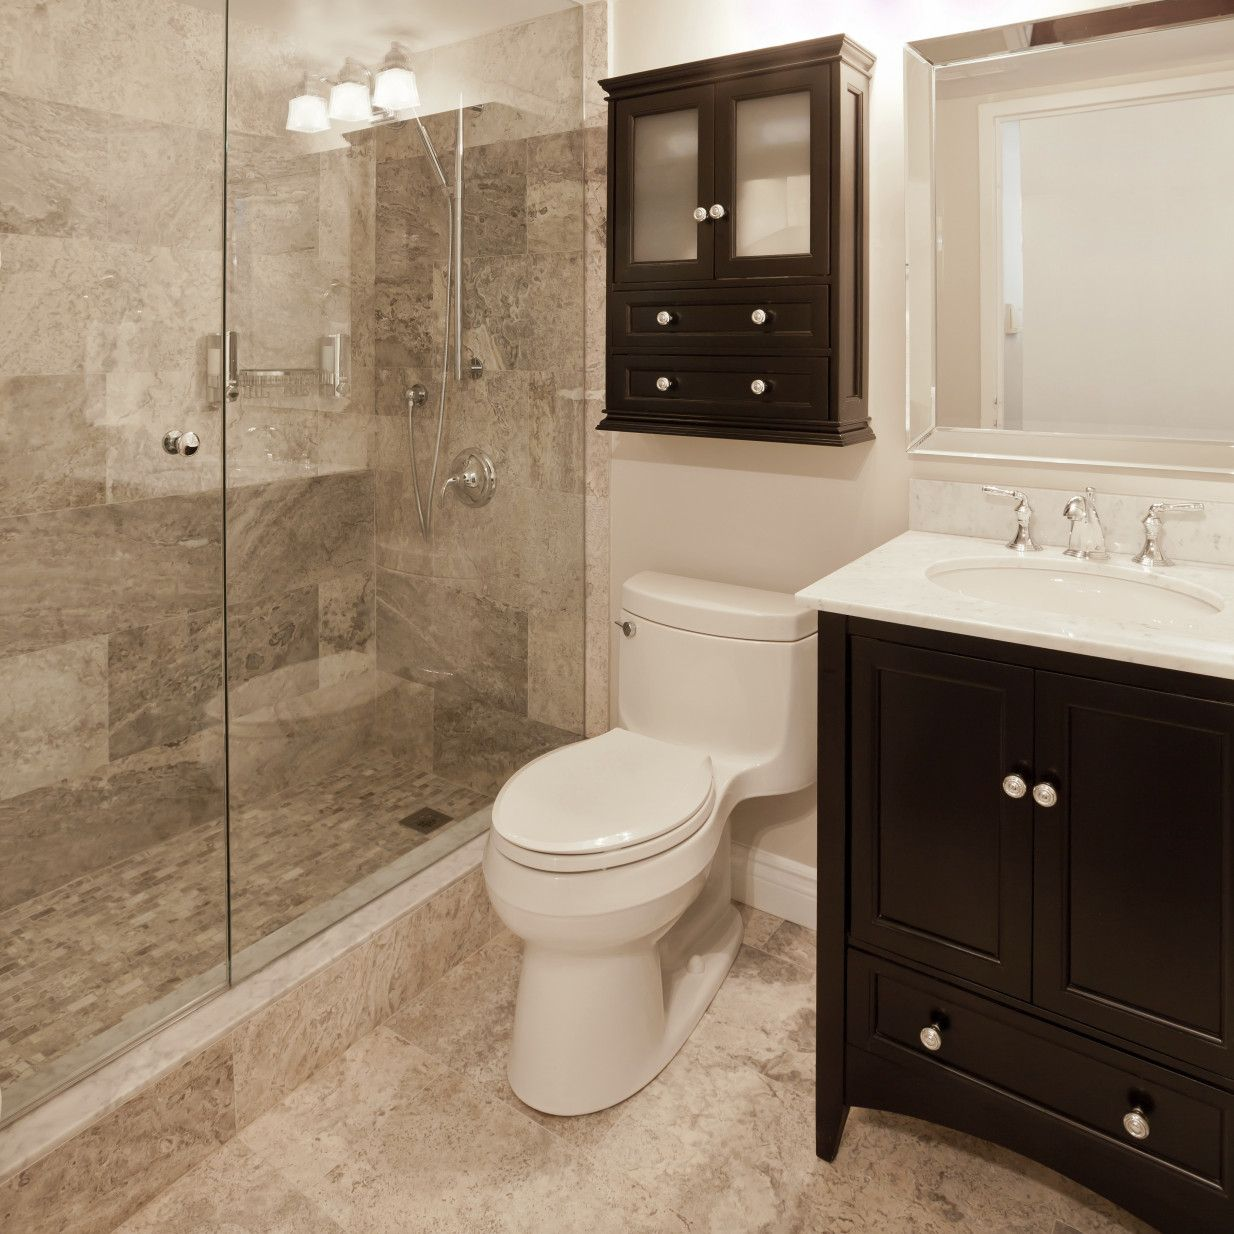 Average Cost Of A Master Bathroom Remodel | Design For Home